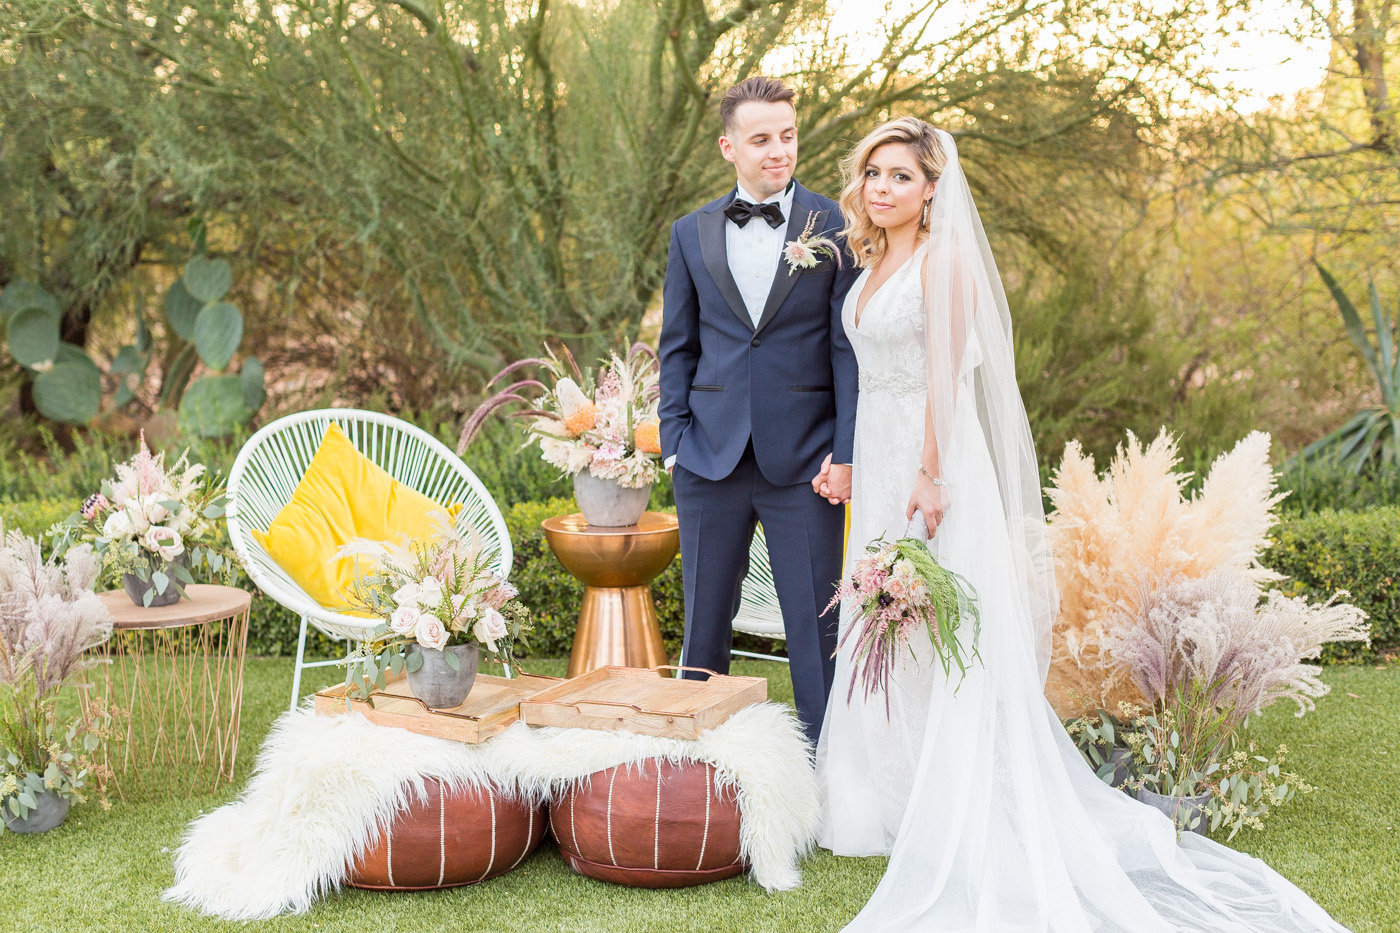 modern wedding photography - photo by Karlee K Photography http://ruffledblog.com/cheerful-desert-wedding-inspiration-with-bright-yellow